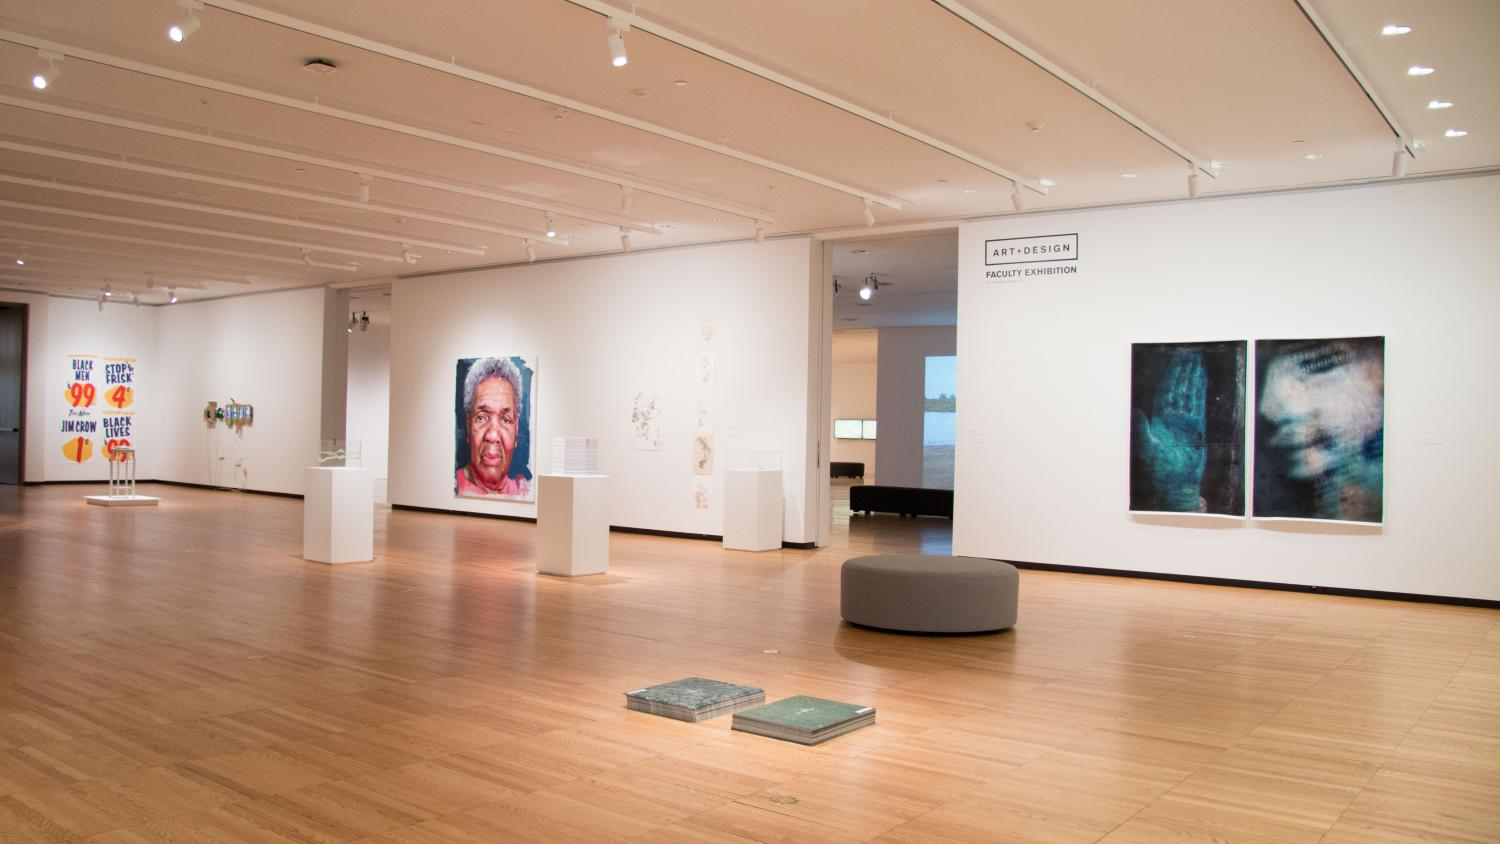 2016 Art + Design Faculty Exhibition, installation at Krannert Art Museum. Featuring works by Nekita Thomas, Billie Thiede, Jorge Lucero, Stephen Cartwright, Patrick Earl Hammie, Rachel Riley, Ryan Griffis, and Joseph Squire. Photo by Julia Nucci Kelly